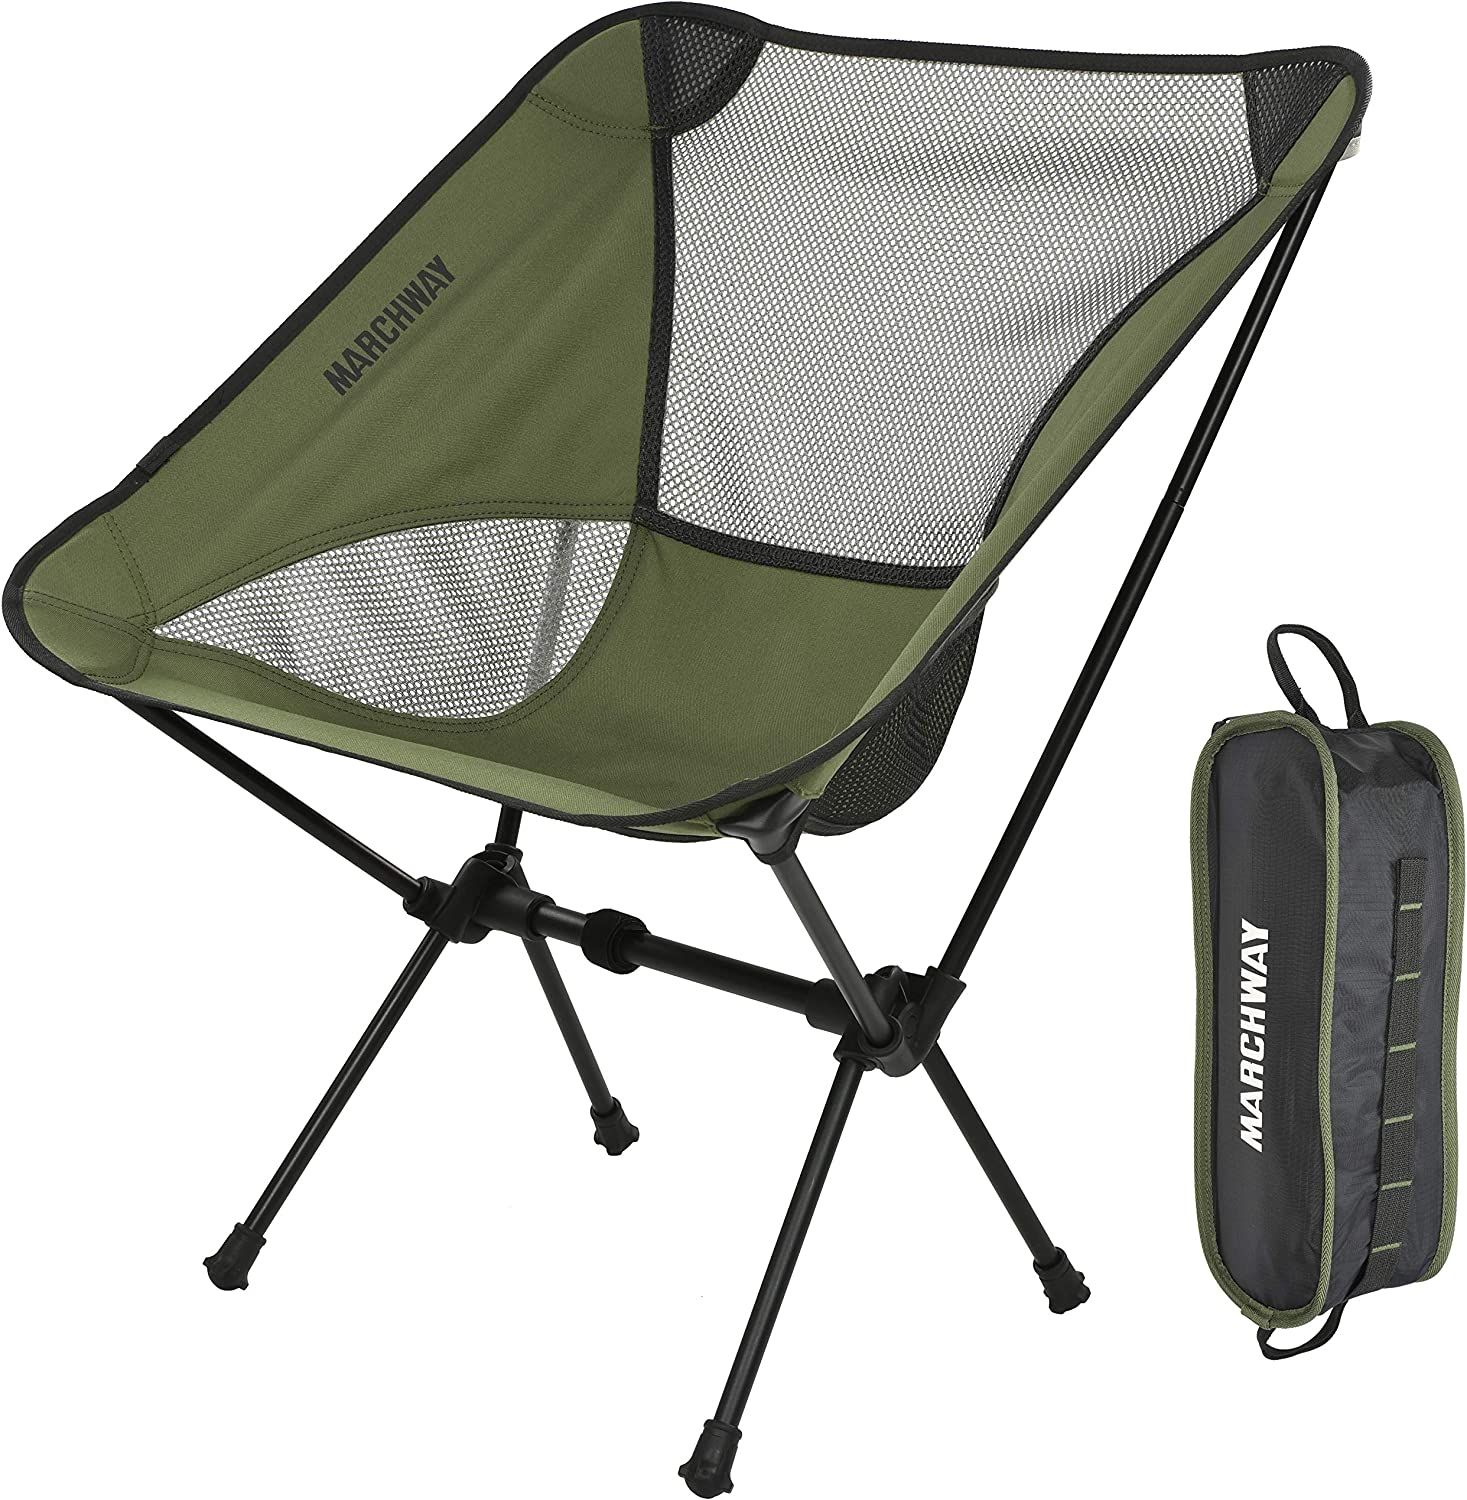 Buy MARCHWAY Ultralight Folding Camping Chair, Portable Compact for Outdoor  Camp, Travel, Beach, Picnic, Festival, Hiking, Lightweight Backpacking  Online in Turkey. B06XF3BCSG